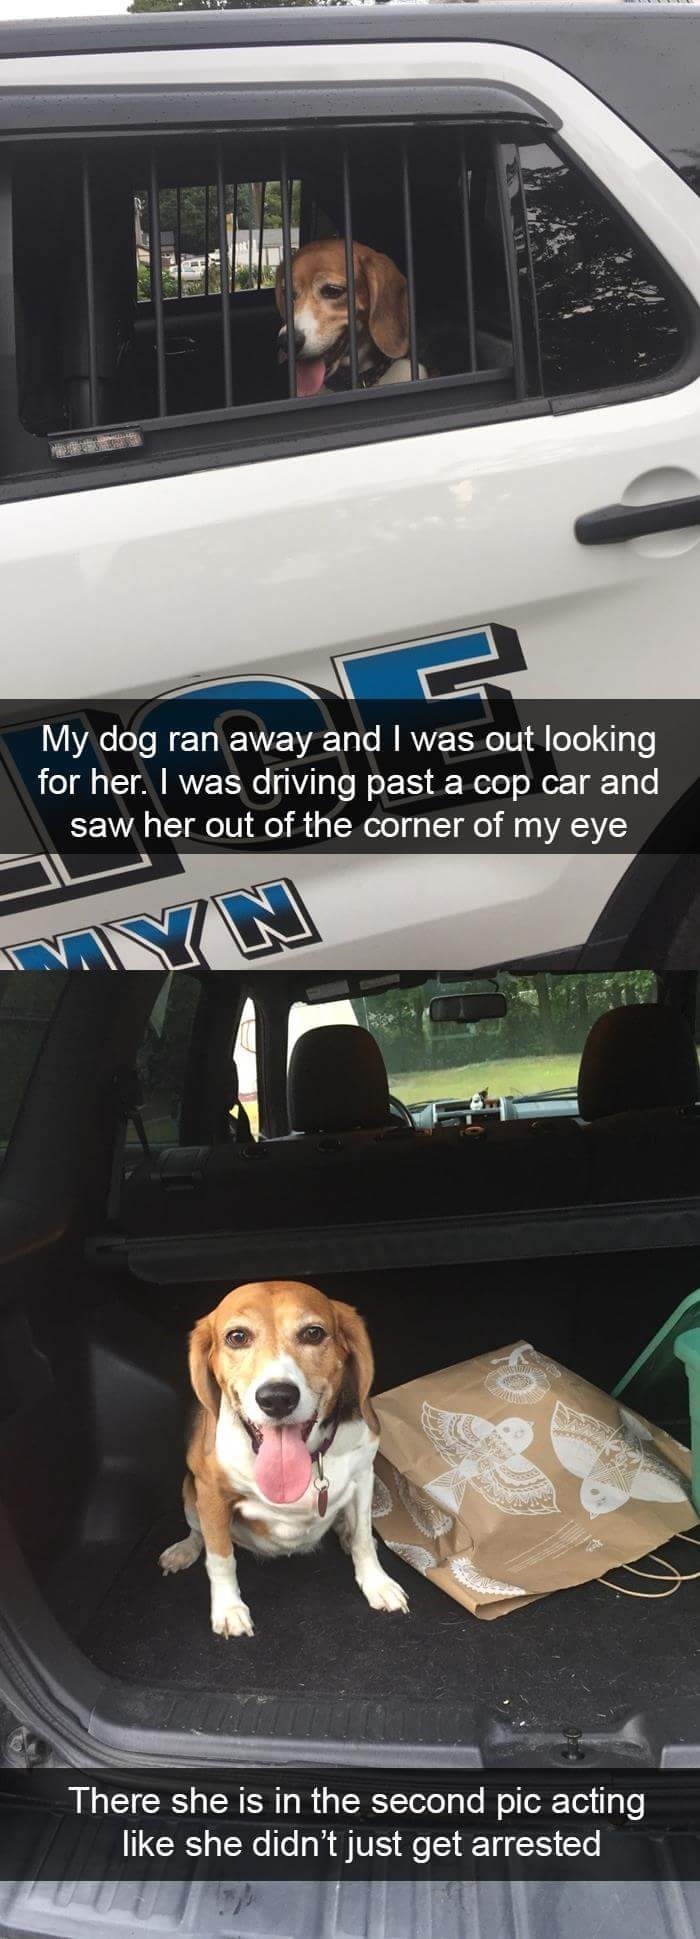 Vehicle door - My dog ran away and I was out looking for her. I was driving past a cop car and saw her out of the corner of my eye NA There she is in the second pic acting like she didn't just get arrested